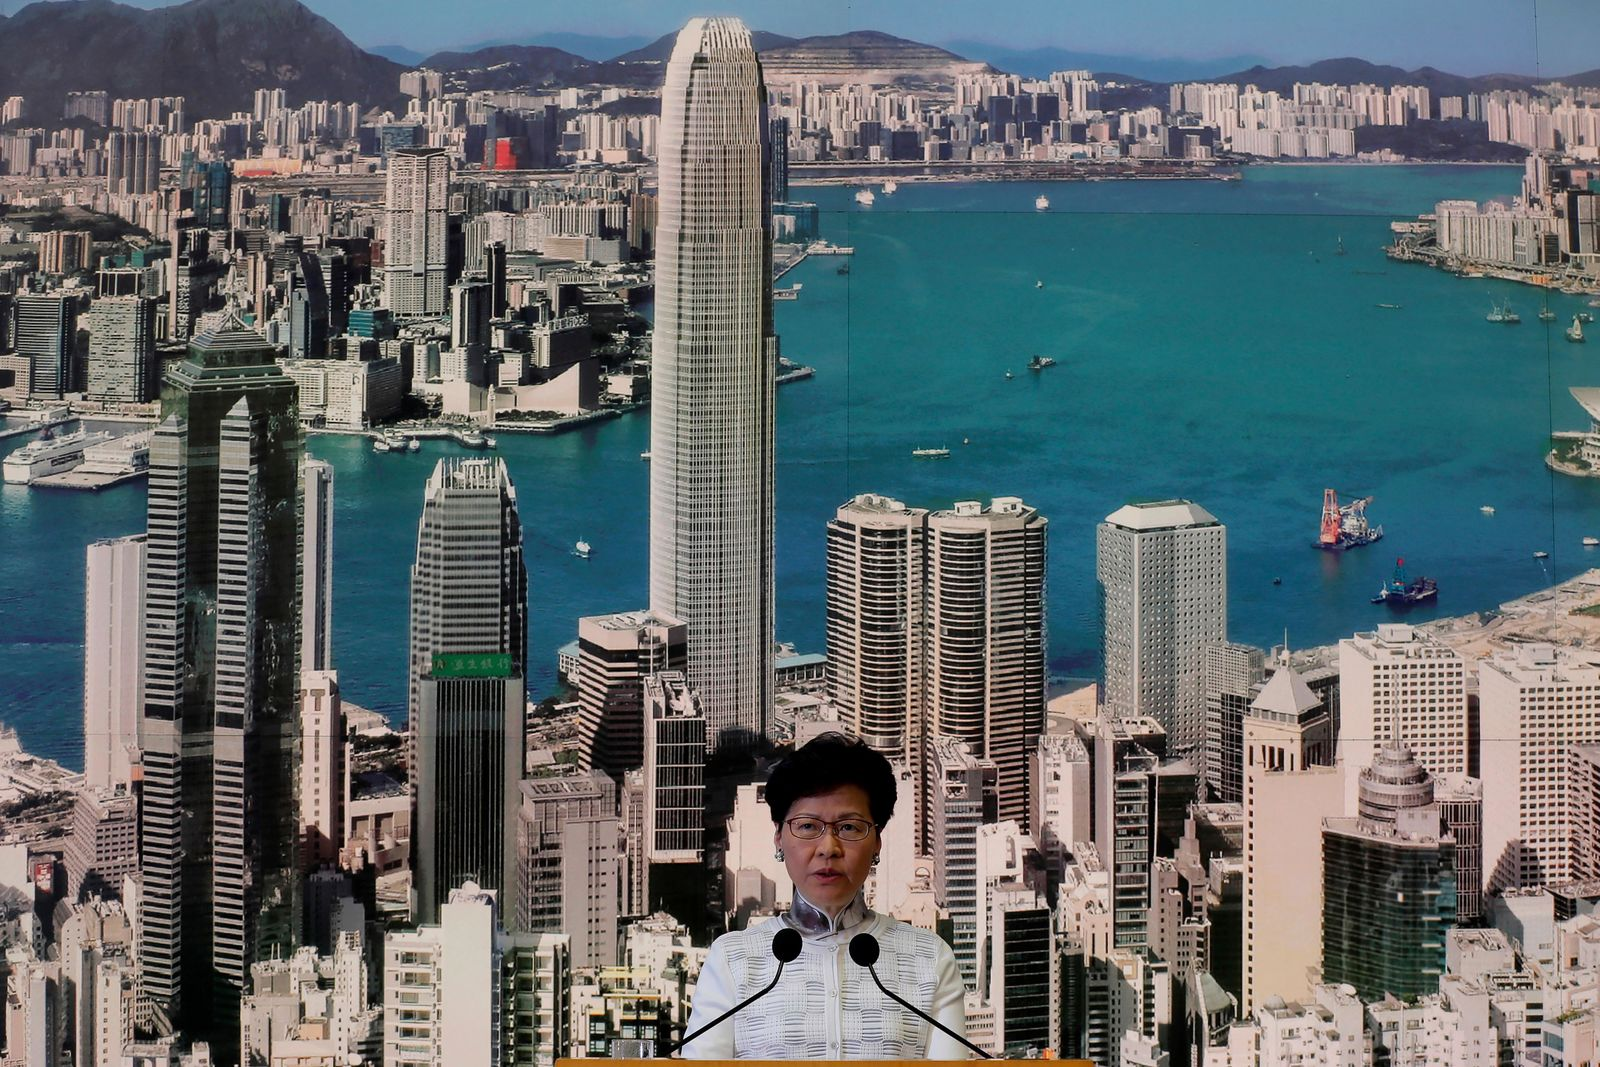 Hong Kong's Chief Executive Carrie Lam speaks at a press conference, Saturday, June 15, 2019, in Hong Kong. (AP Photo/Kin Cheung)